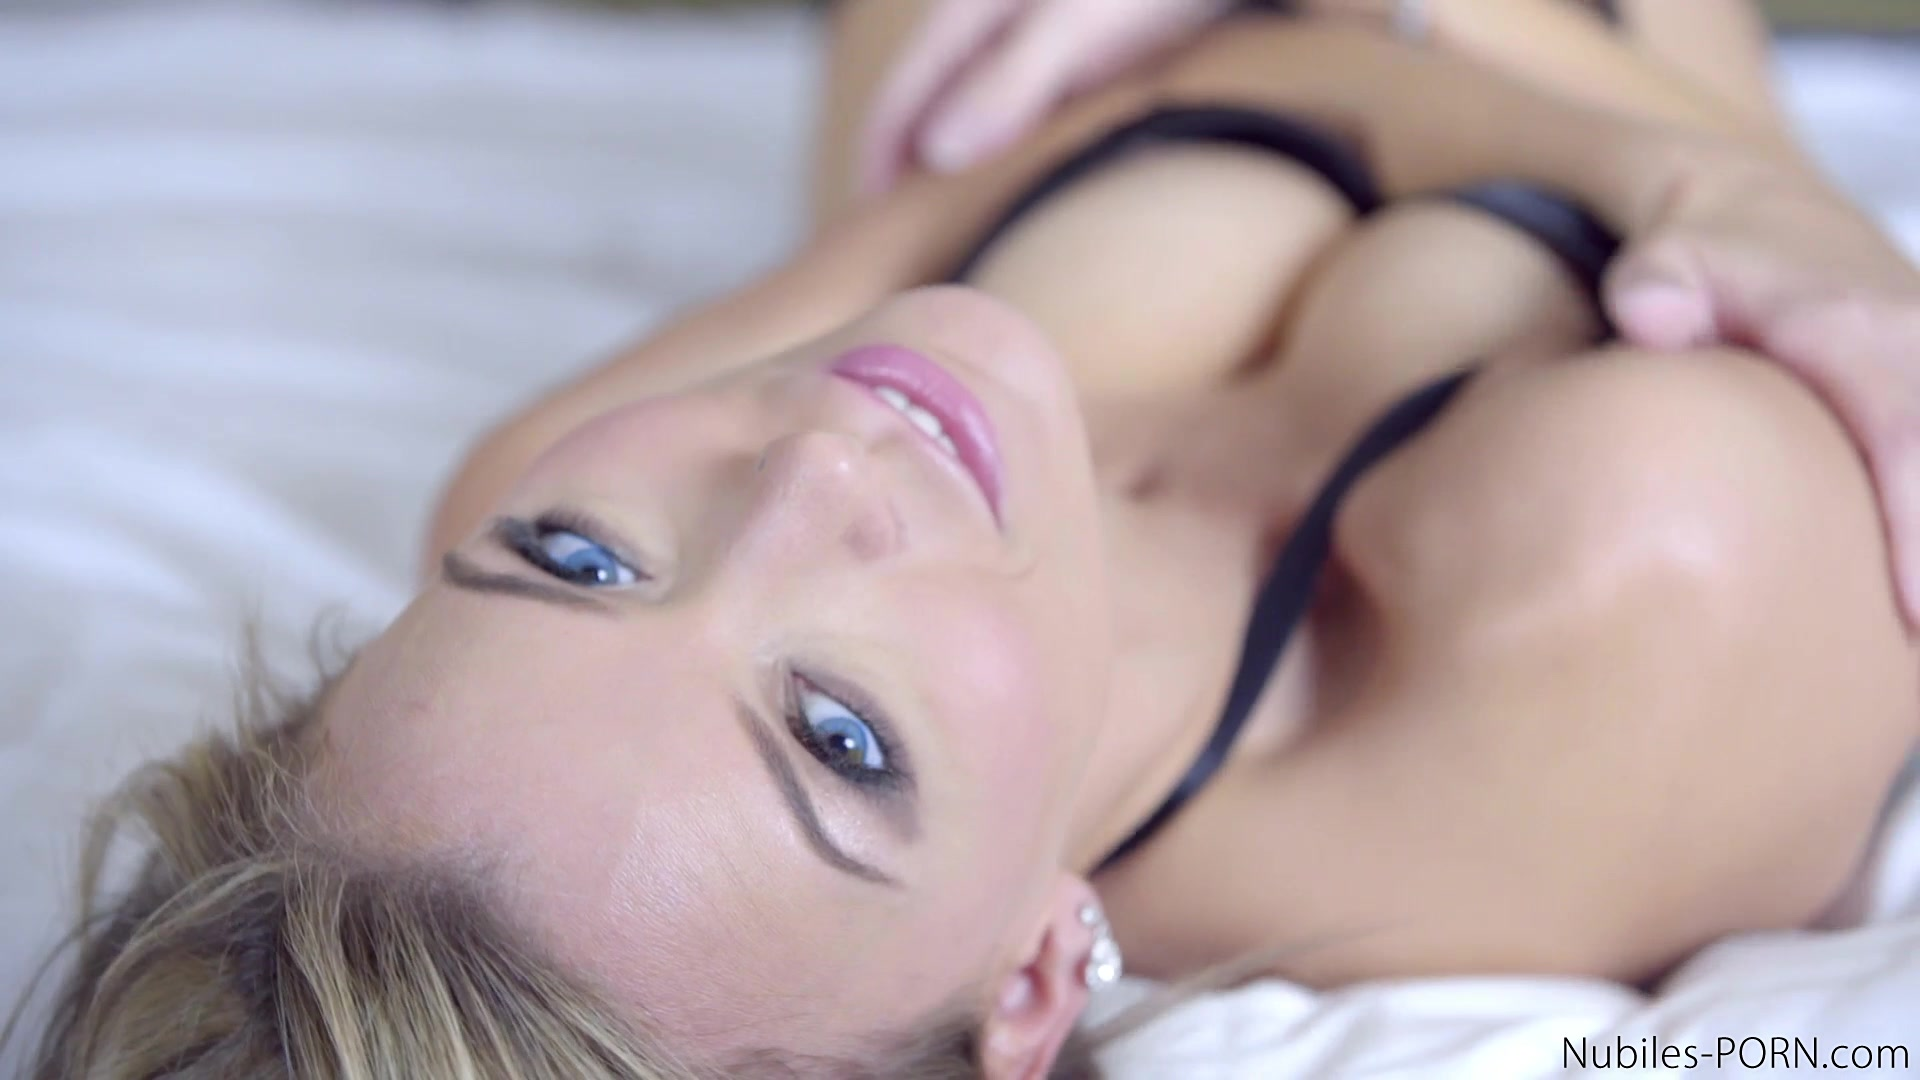 what ultimate girlfriend experience